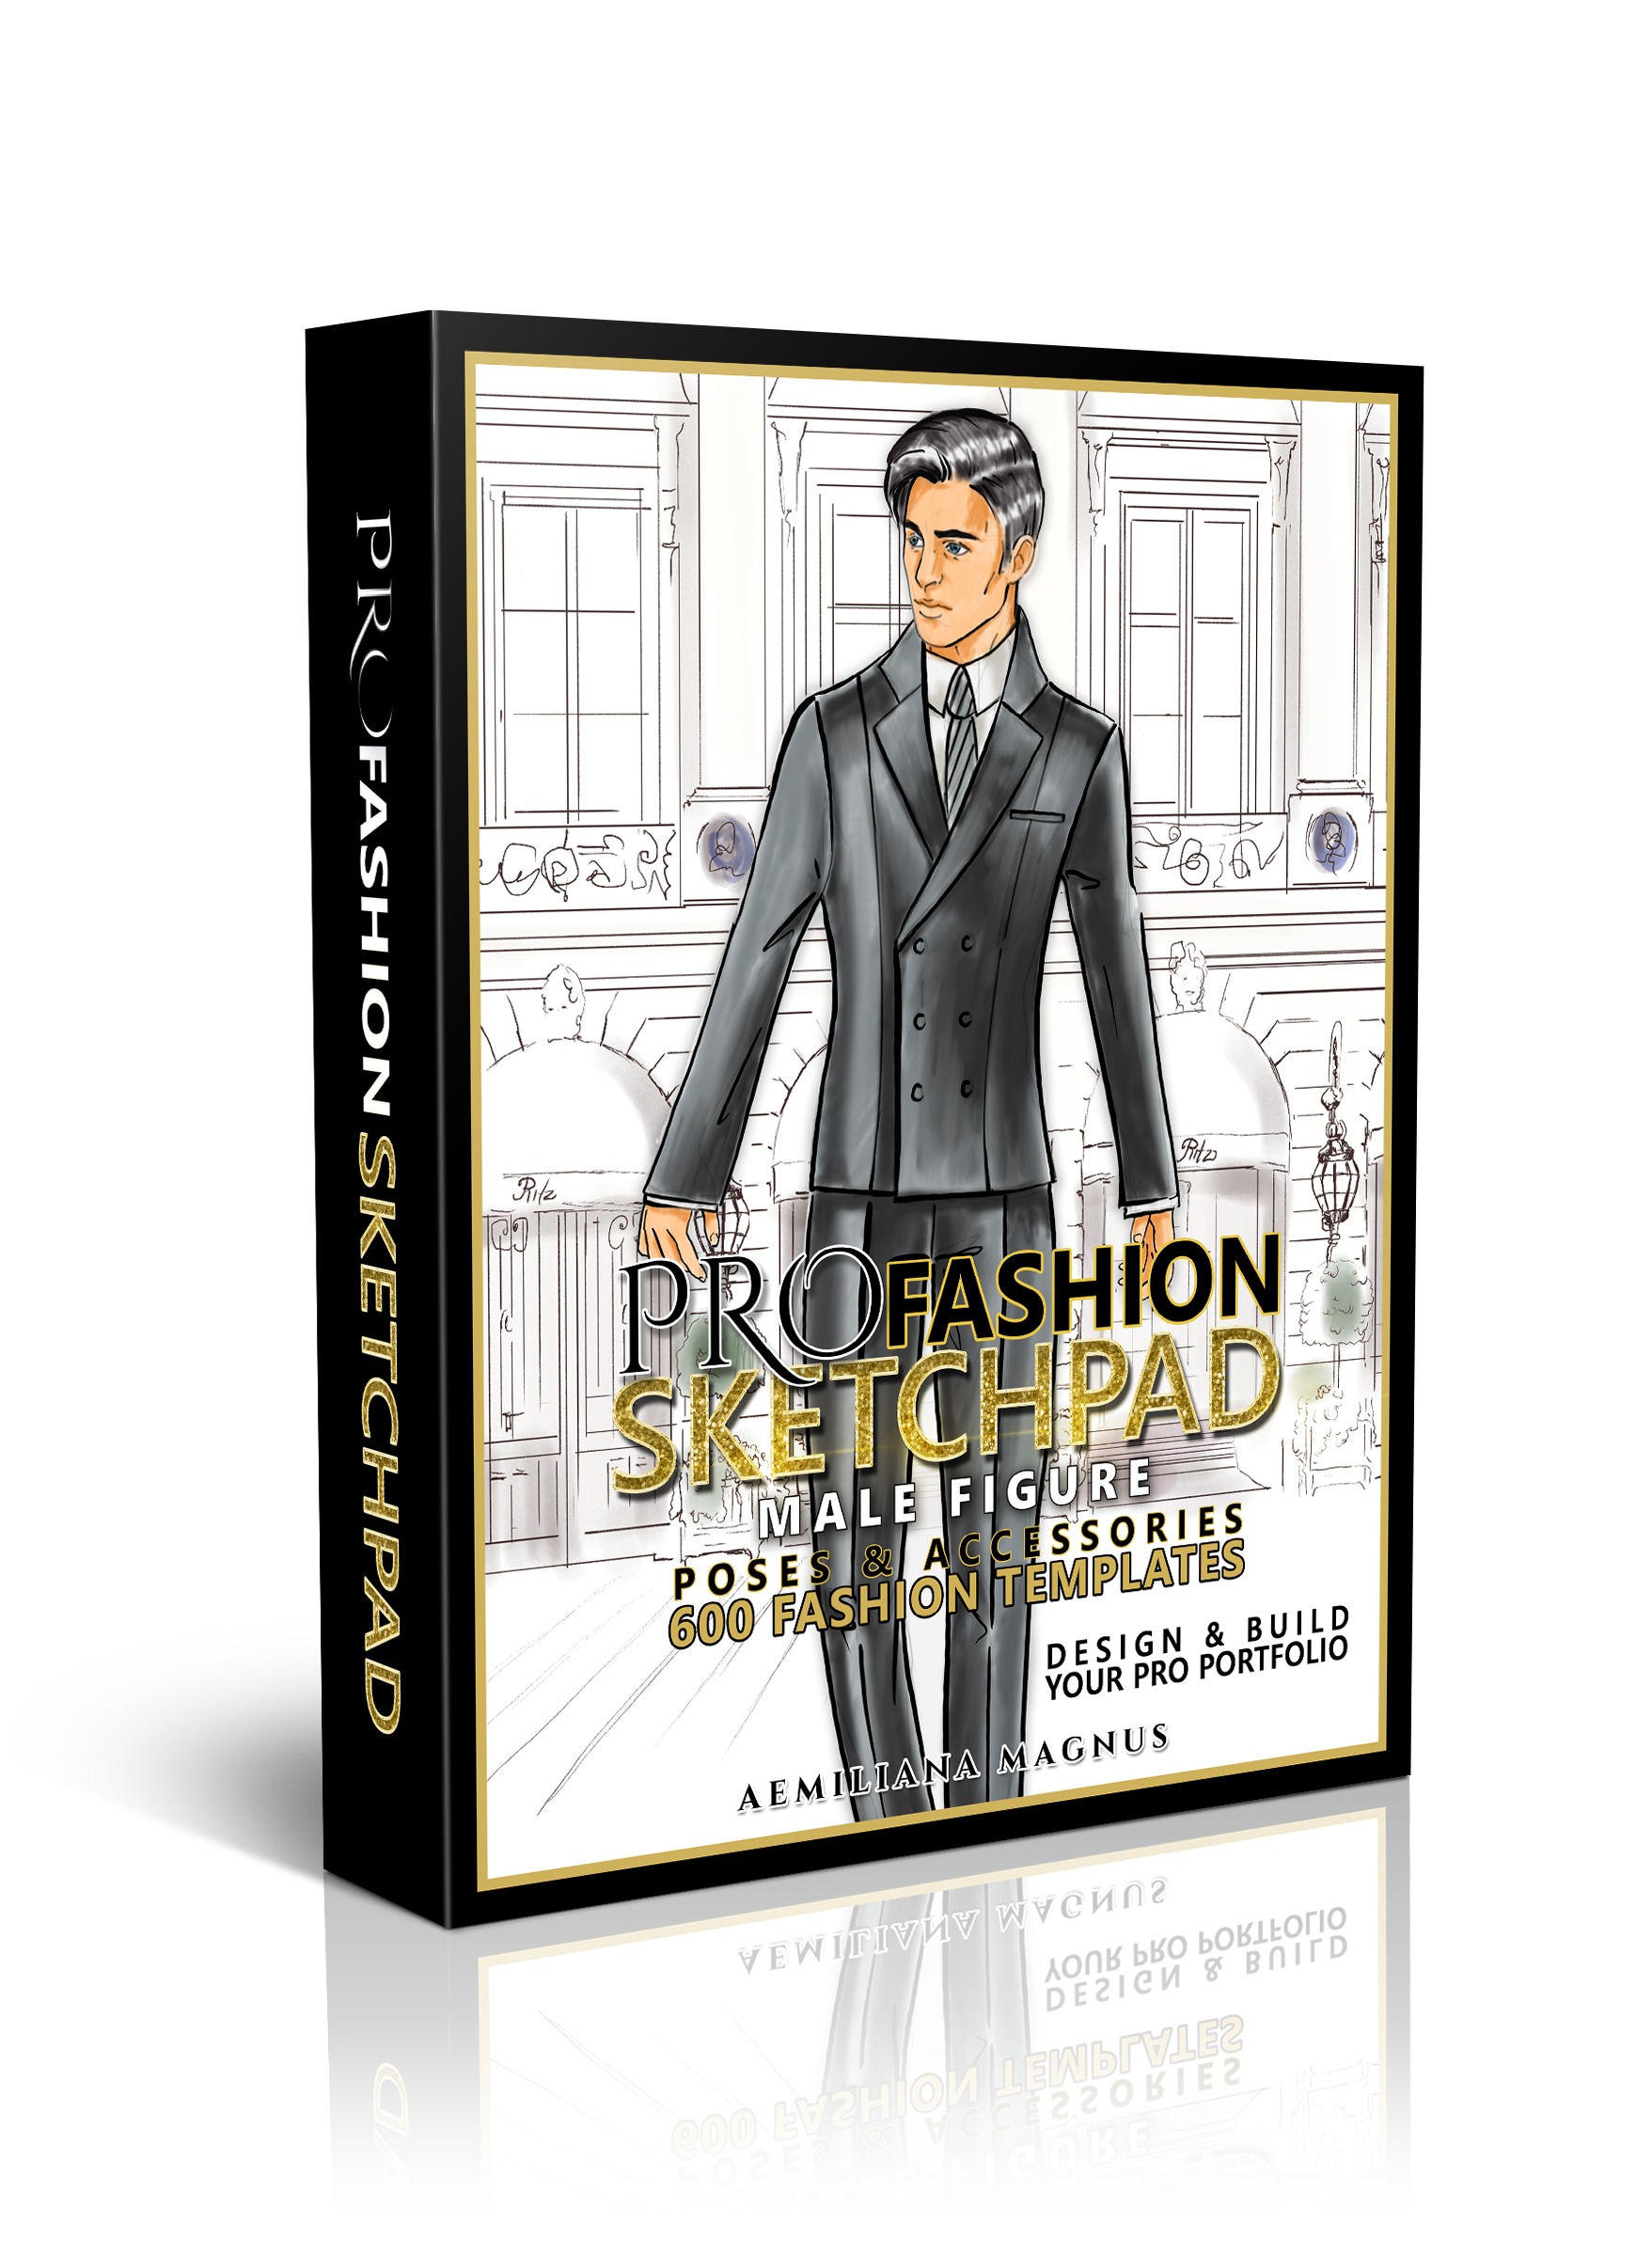 How To Draw 600 Fashion Design Sketches With One Fashion Sketchbook By Pro Fashion Sketchpad Fashion Sketchbooks Medium